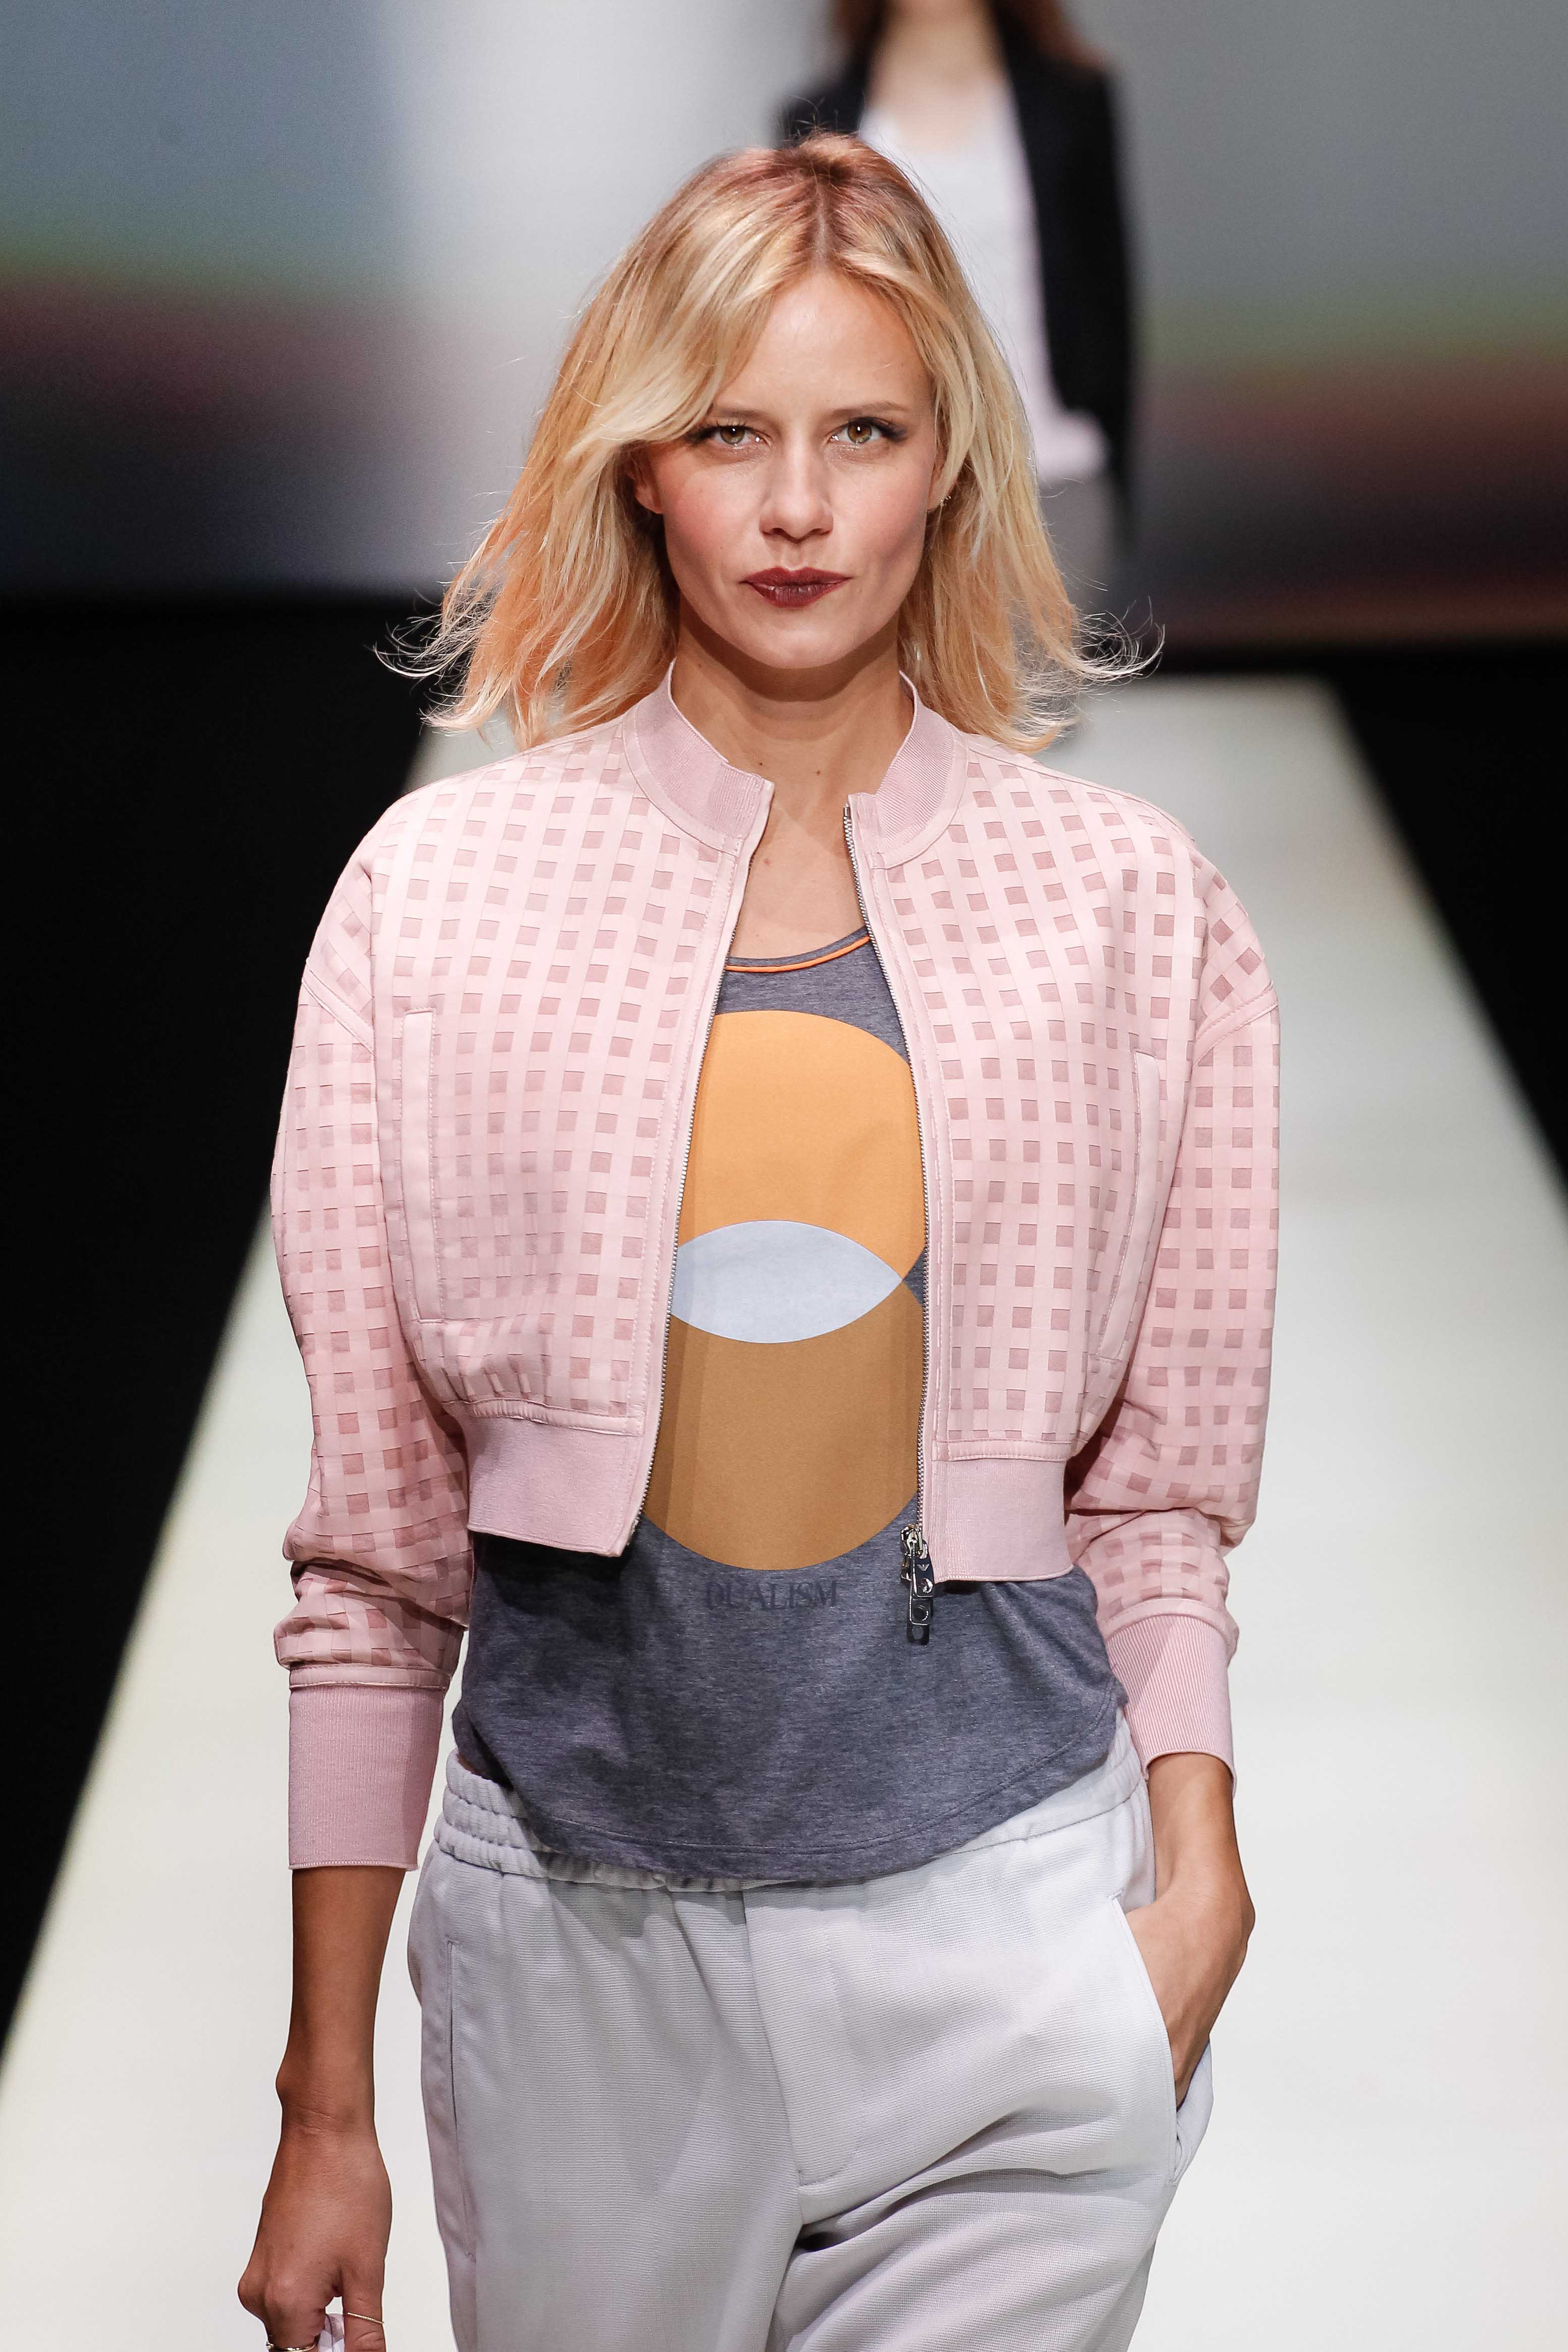 Spring Ombre looks include pink rooted ombre styles.